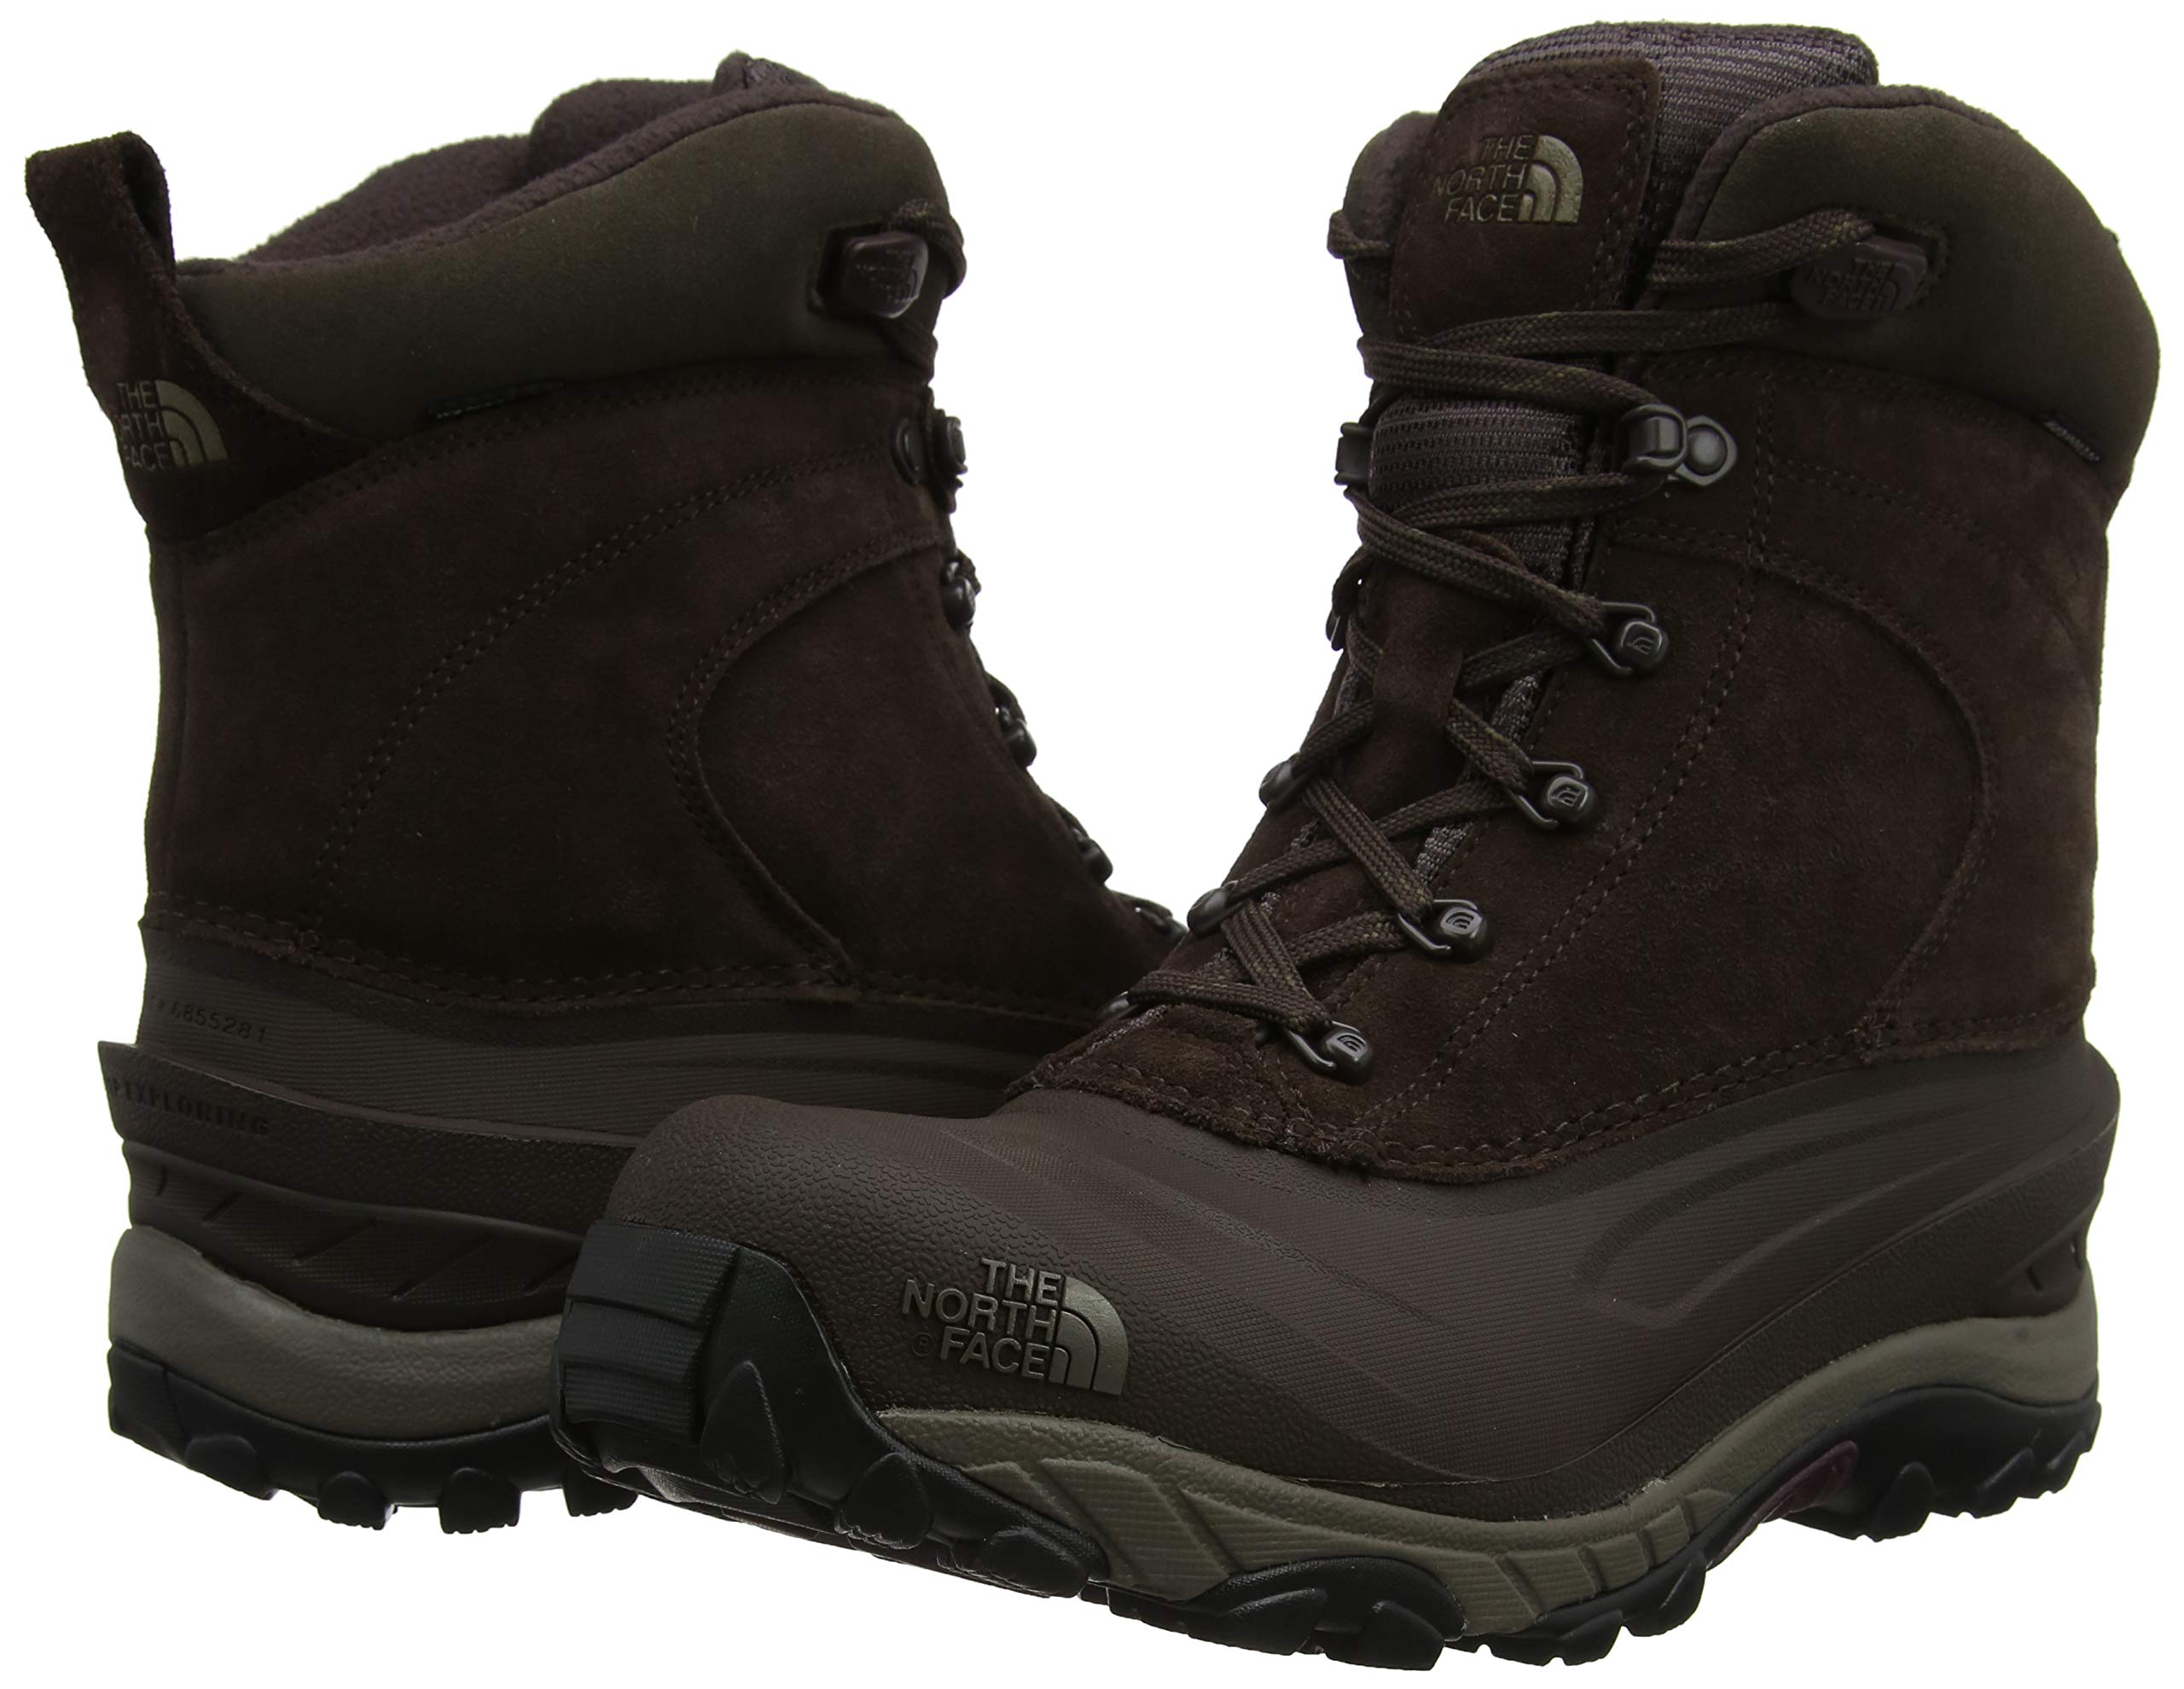 81 l84lQkVL - THE NORTH FACE Men's Chilkat Iii High Rise Hiking Boots